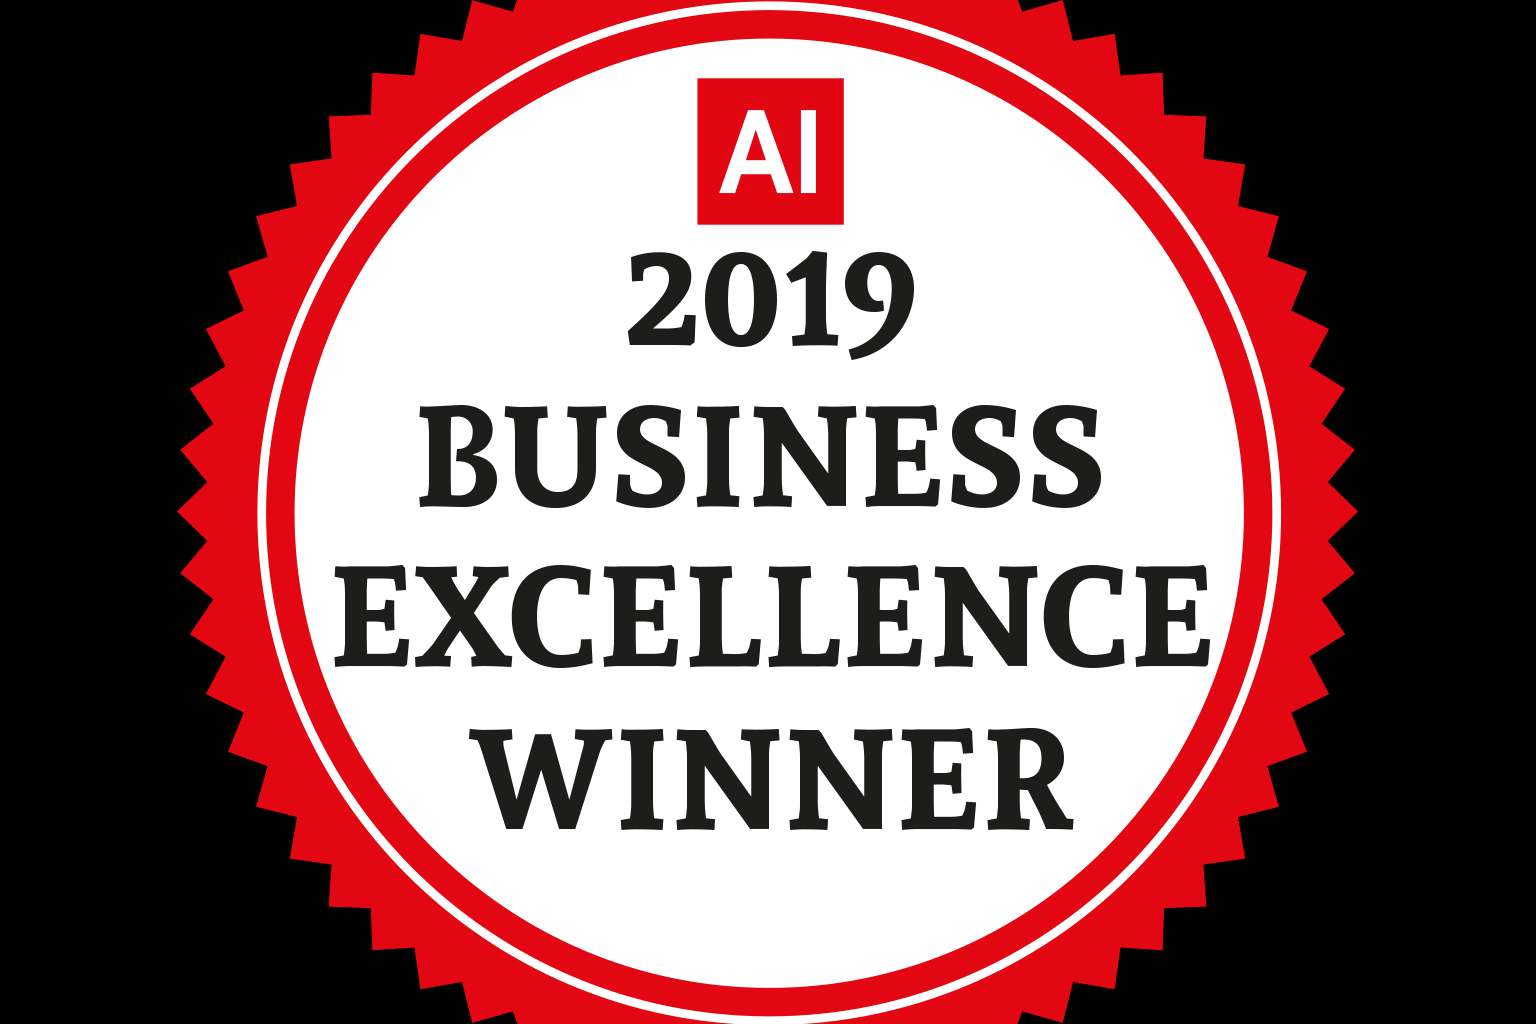 CT Corporation wins 2019 AI Business Excellence Award